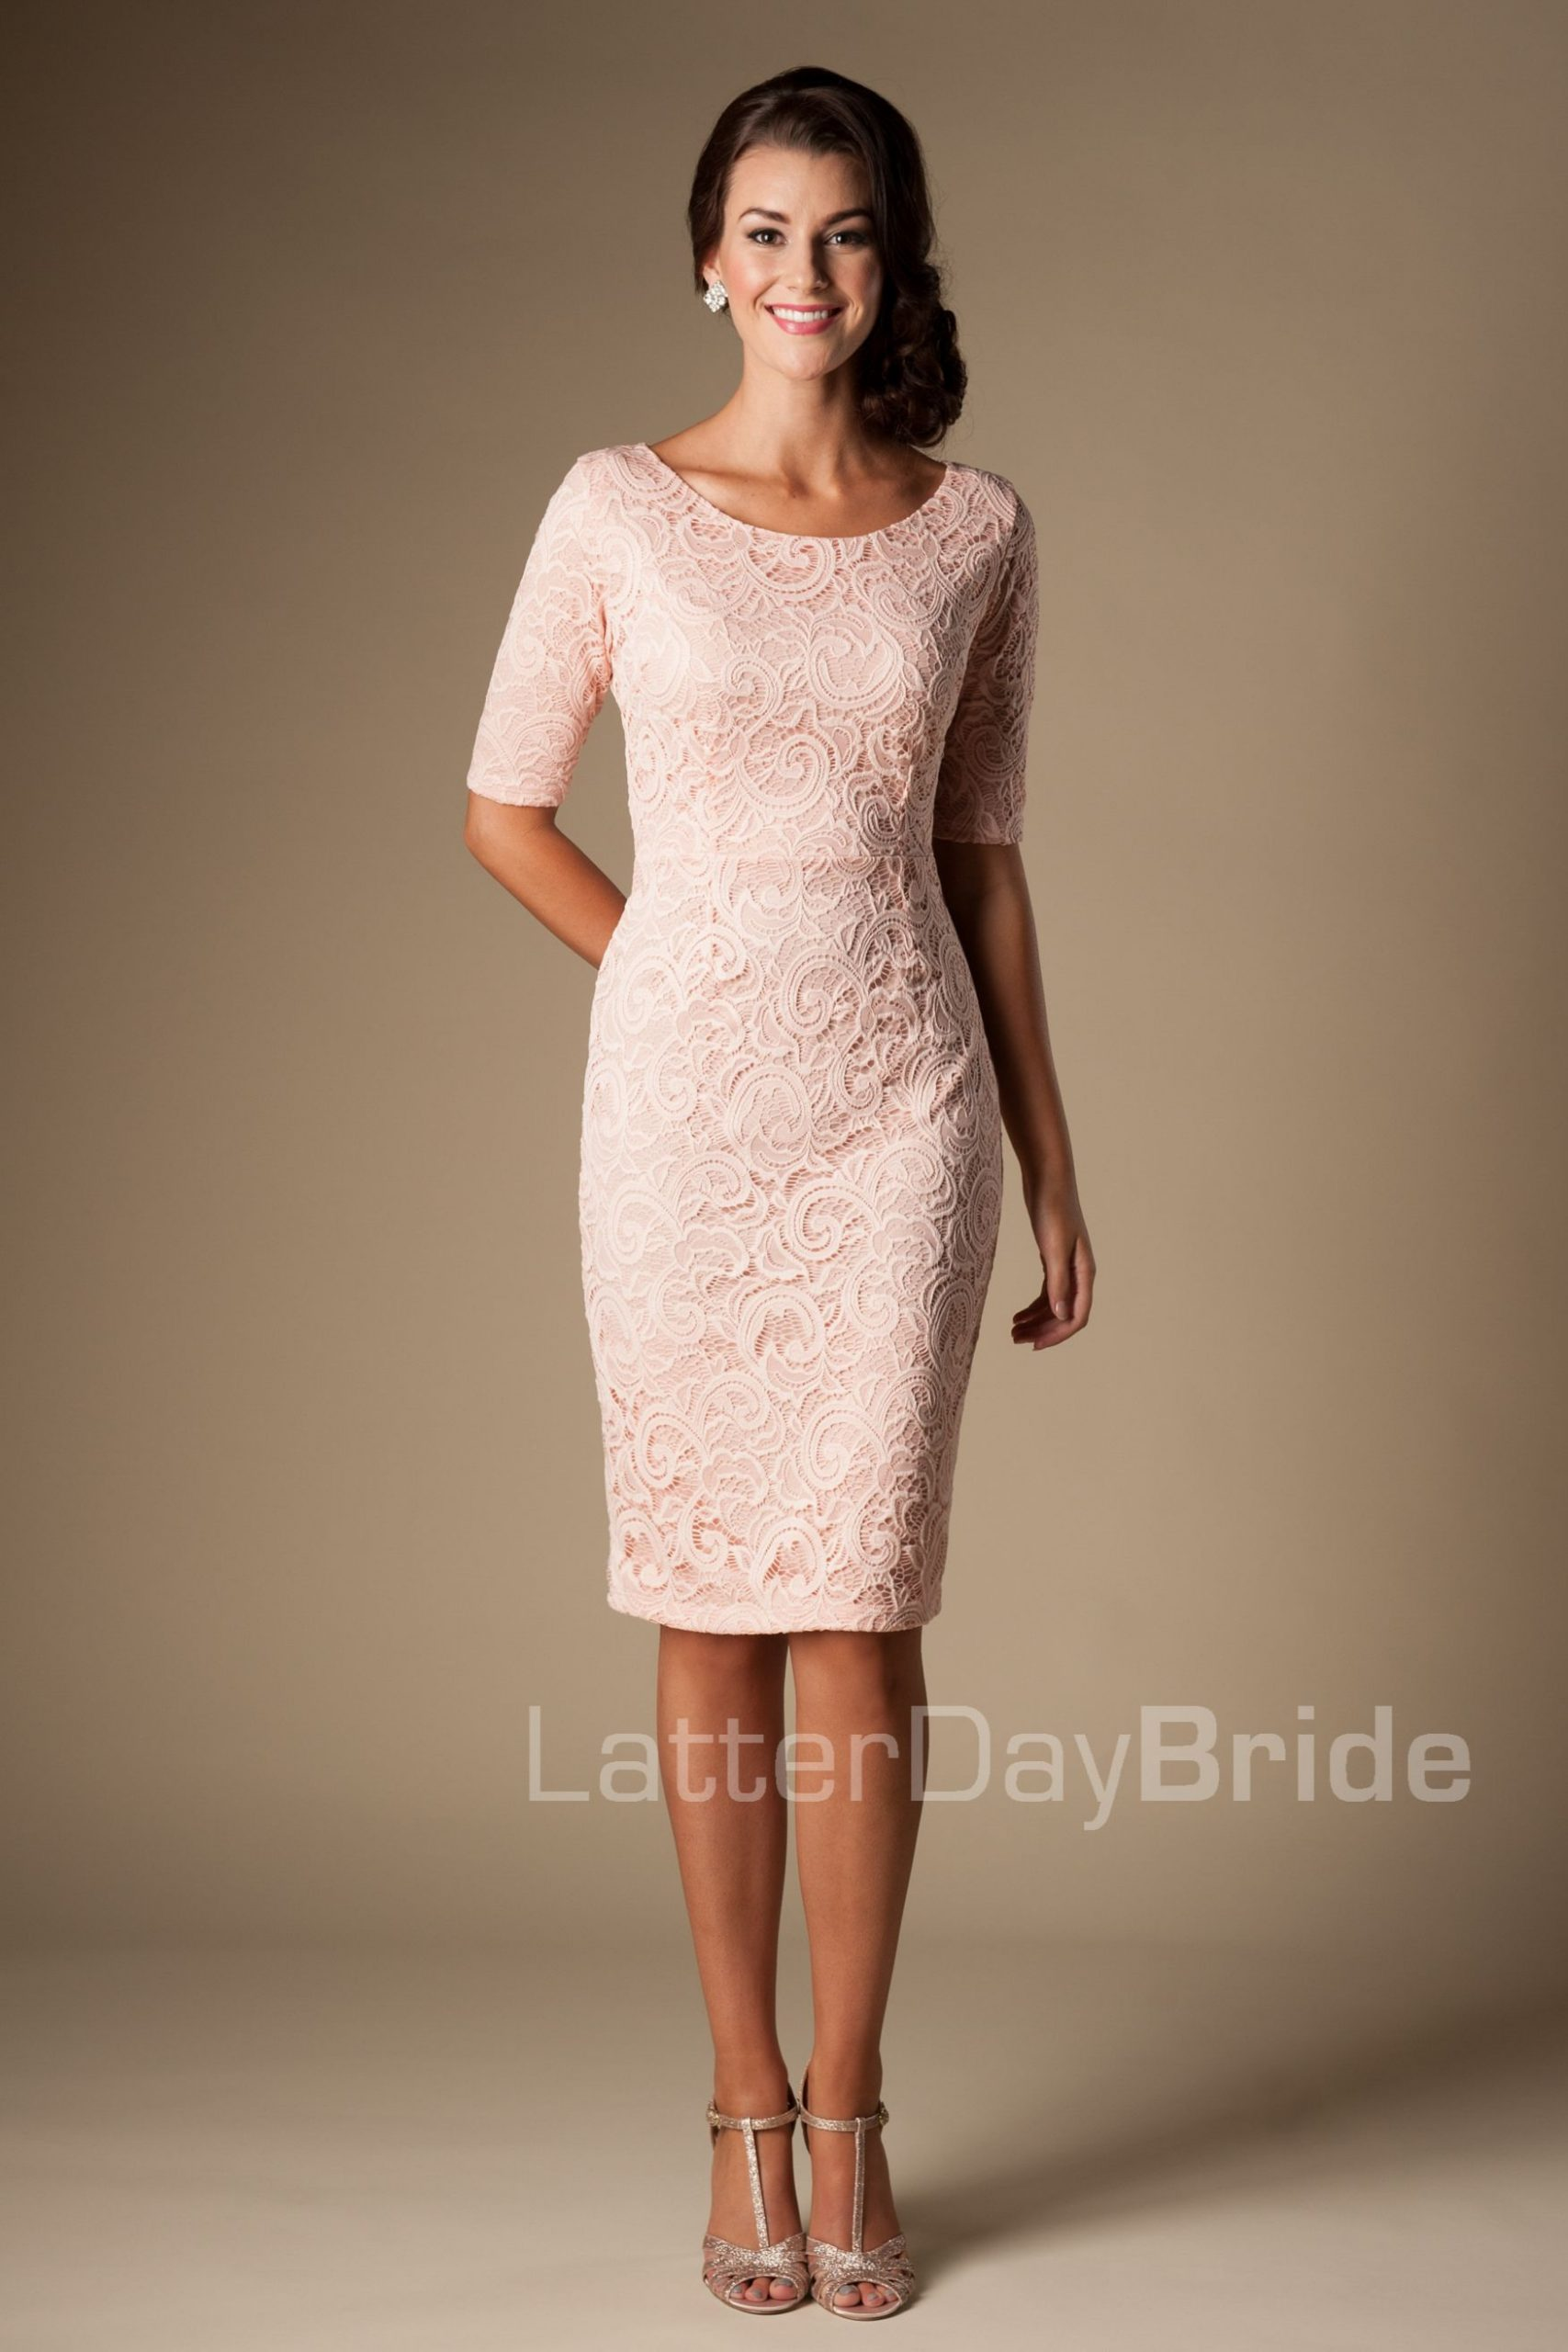 Modest Bridesmaid Dresses How Lovely  Festliche Kleider - Abendkleid